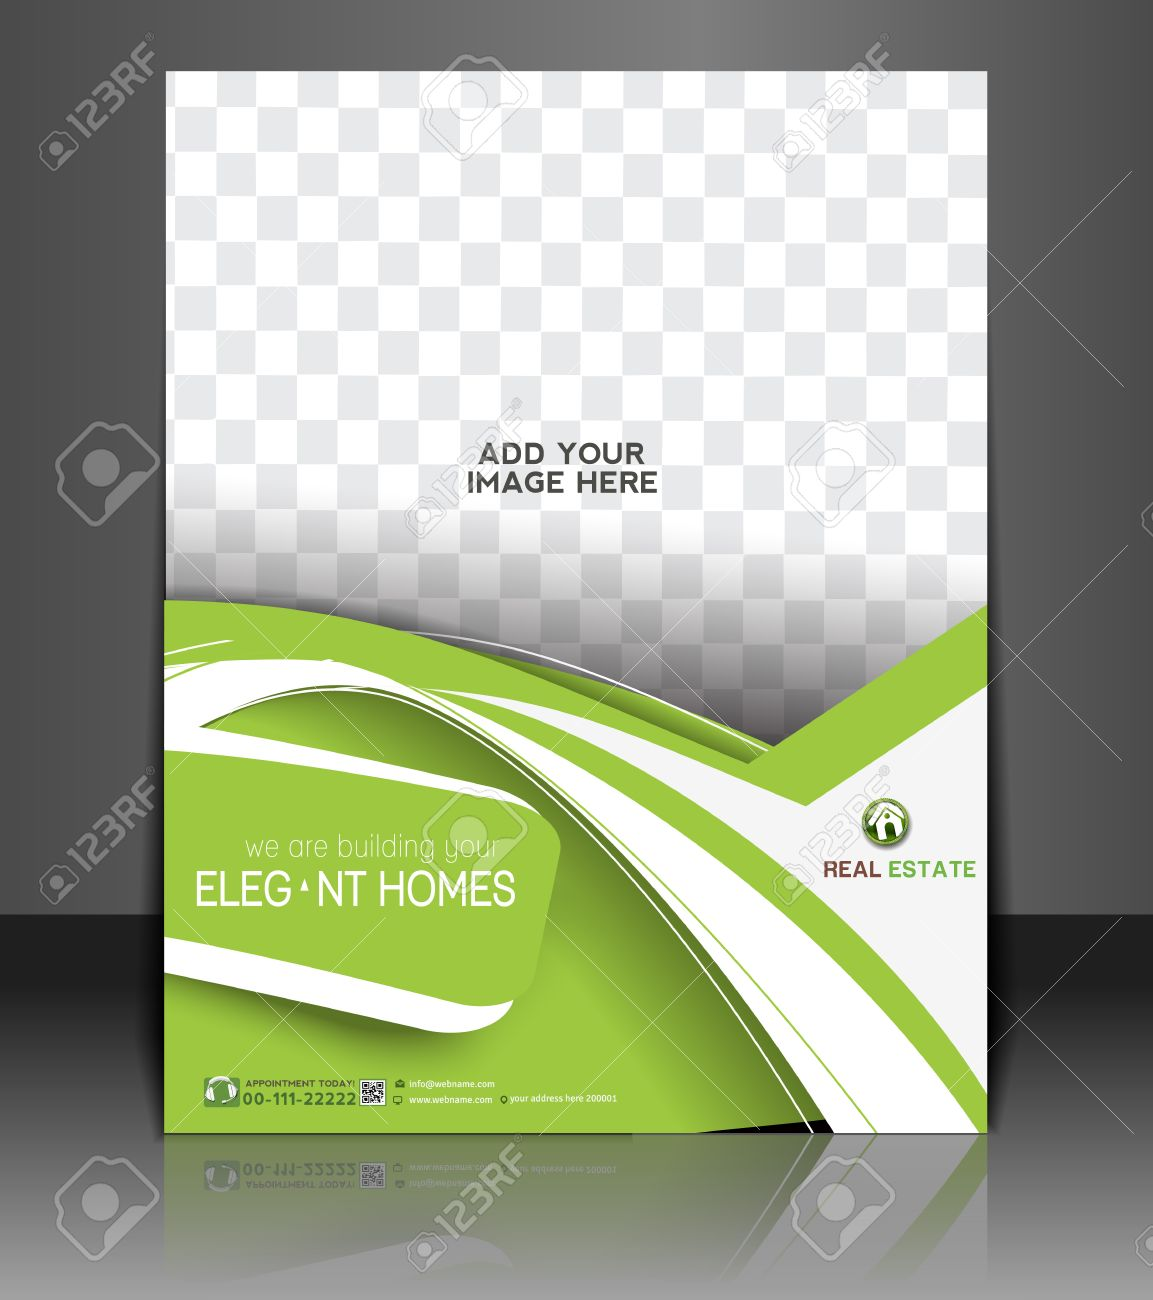 real estate agent flyer poster template design royalty real estate agent flyer poster template design stock vector 28516680